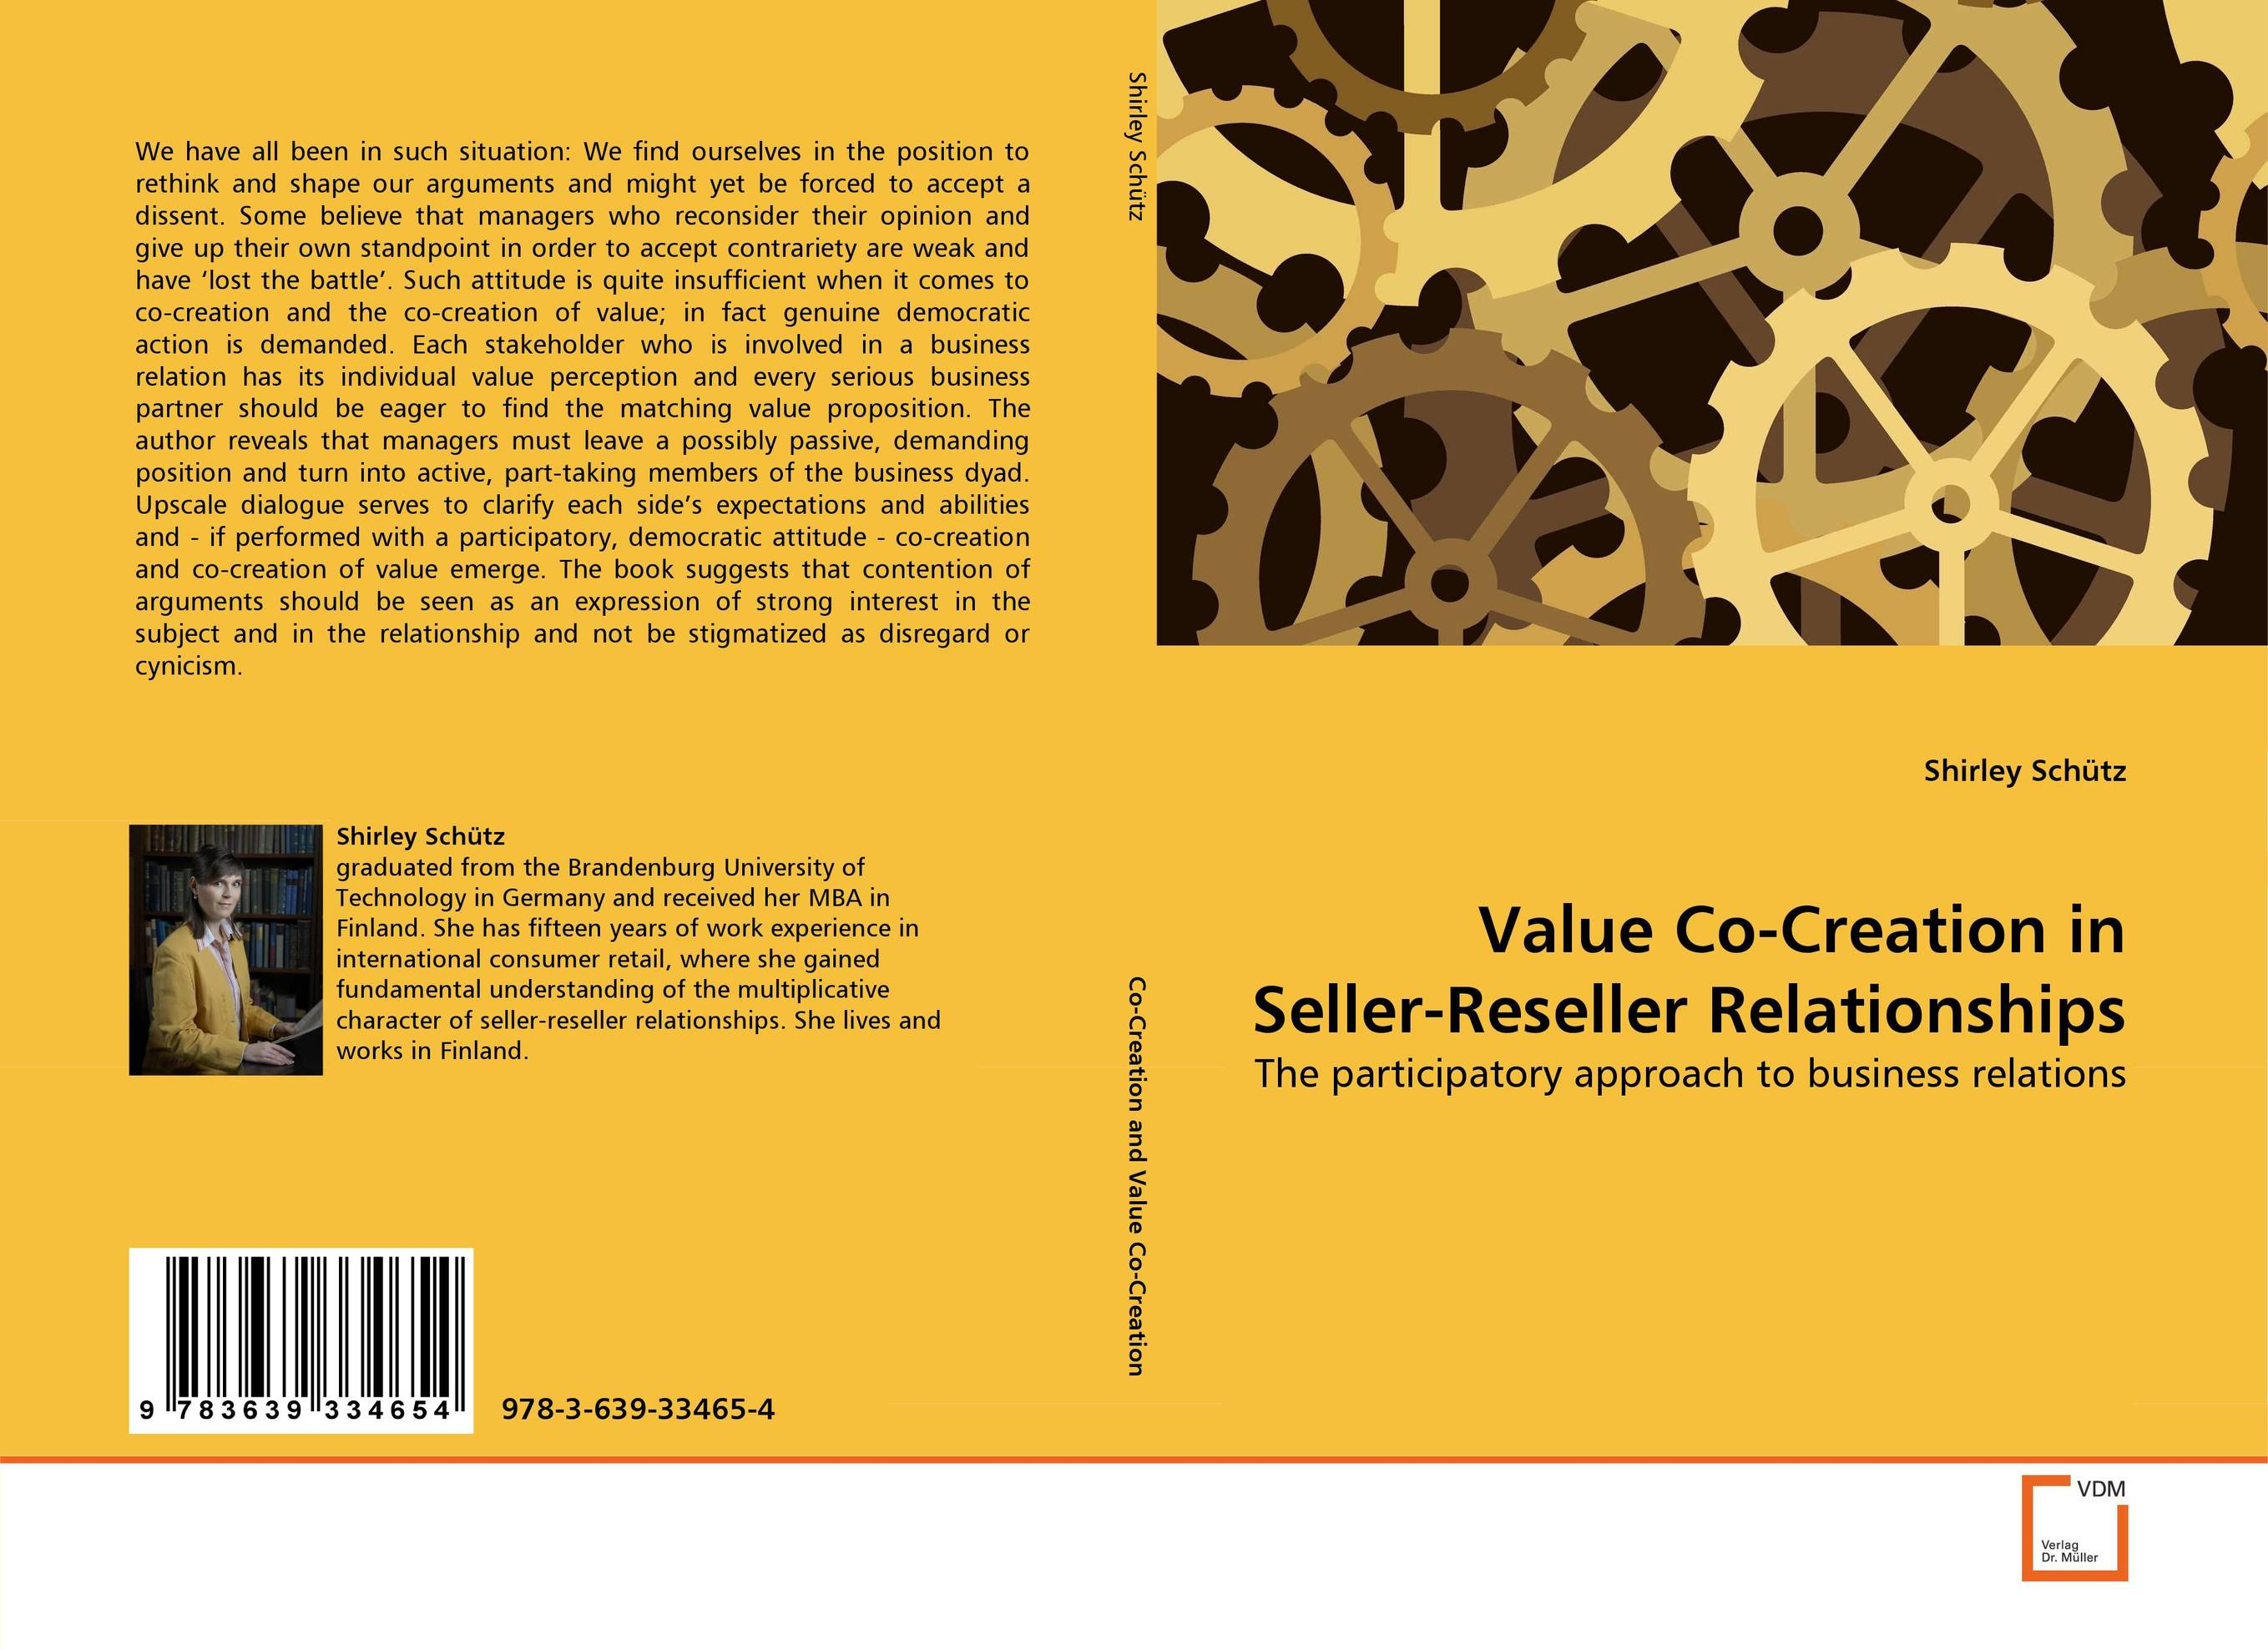 Value Co-Creation in Seller-Reseller Relationships jennifer meyer decision quality value creation from better business decisions